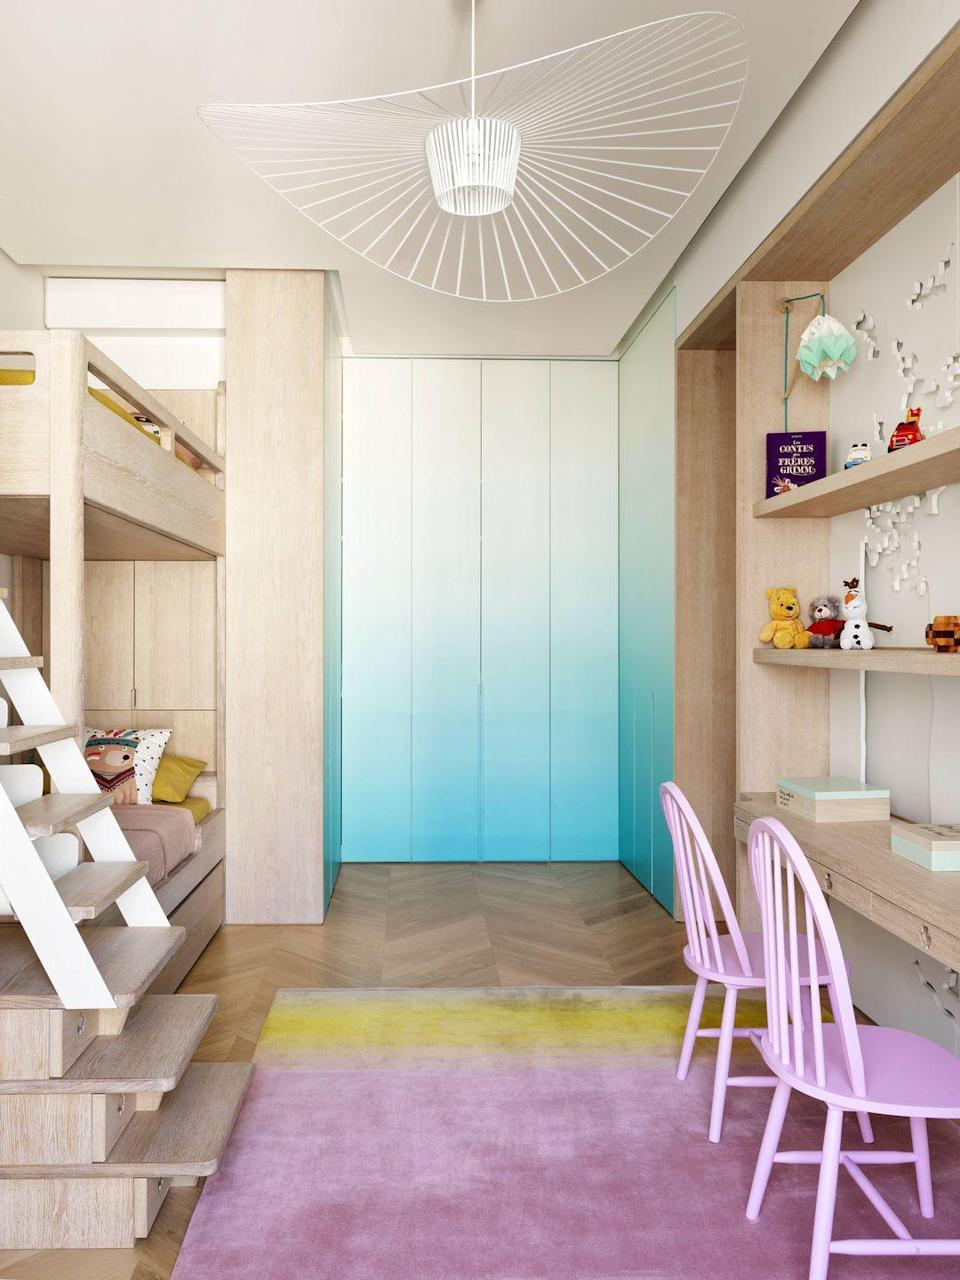 """<p>Ombre walls, pastel chairs, and eye-catching rugs (Han Feng for <a href=""""https://www.taipingtent.com"""" rel=""""nofollow noopener"""" target=""""_blank"""" data-ylk=""""slk:Tai Ping"""" class=""""link rapid-noclick-resp"""">Tai Ping</a>) establish a creativity hub for children to play and dream within this <a href=""""https://www.veranda.com/home-decorators/a30145144/le-berre-vevaud-paris-apartment/"""" rel=""""nofollow noopener"""" target=""""_blank"""" data-ylk=""""slk:Paris bedroom"""" class=""""link rapid-noclick-resp"""">Paris bedroom</a> designed by <a href=""""https://leberrevevaud.com"""" rel=""""nofollow noopener"""" target=""""_blank"""" data-ylk=""""slk:Le Berre Vevaud"""" class=""""link rapid-noclick-resp""""> Le Berre Vevaud</a>. The walls are lacquered in various shades of aqua for a playful tie-dye effect. </p>"""